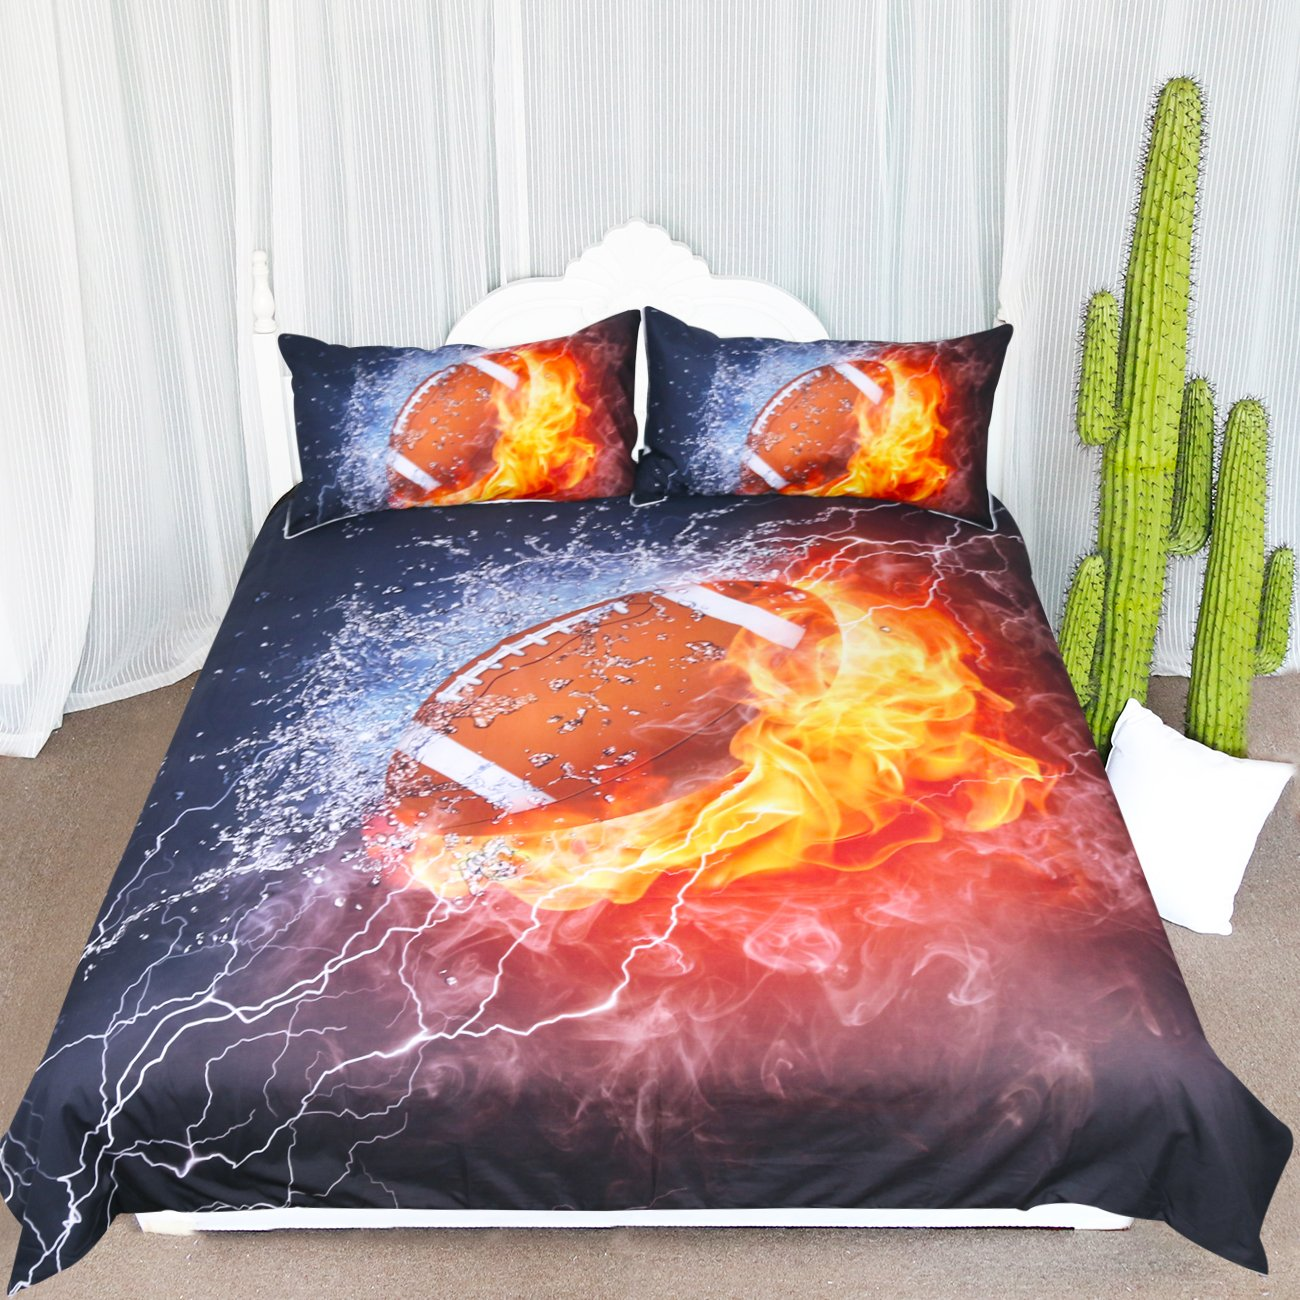 ARIGHTEX American Football Bedding Fire and Ice Brown Ball Flames Pattern Duvet Cover Sports Themed Bedding Dark Blue Orange Boys Duvet Cover (Twin)